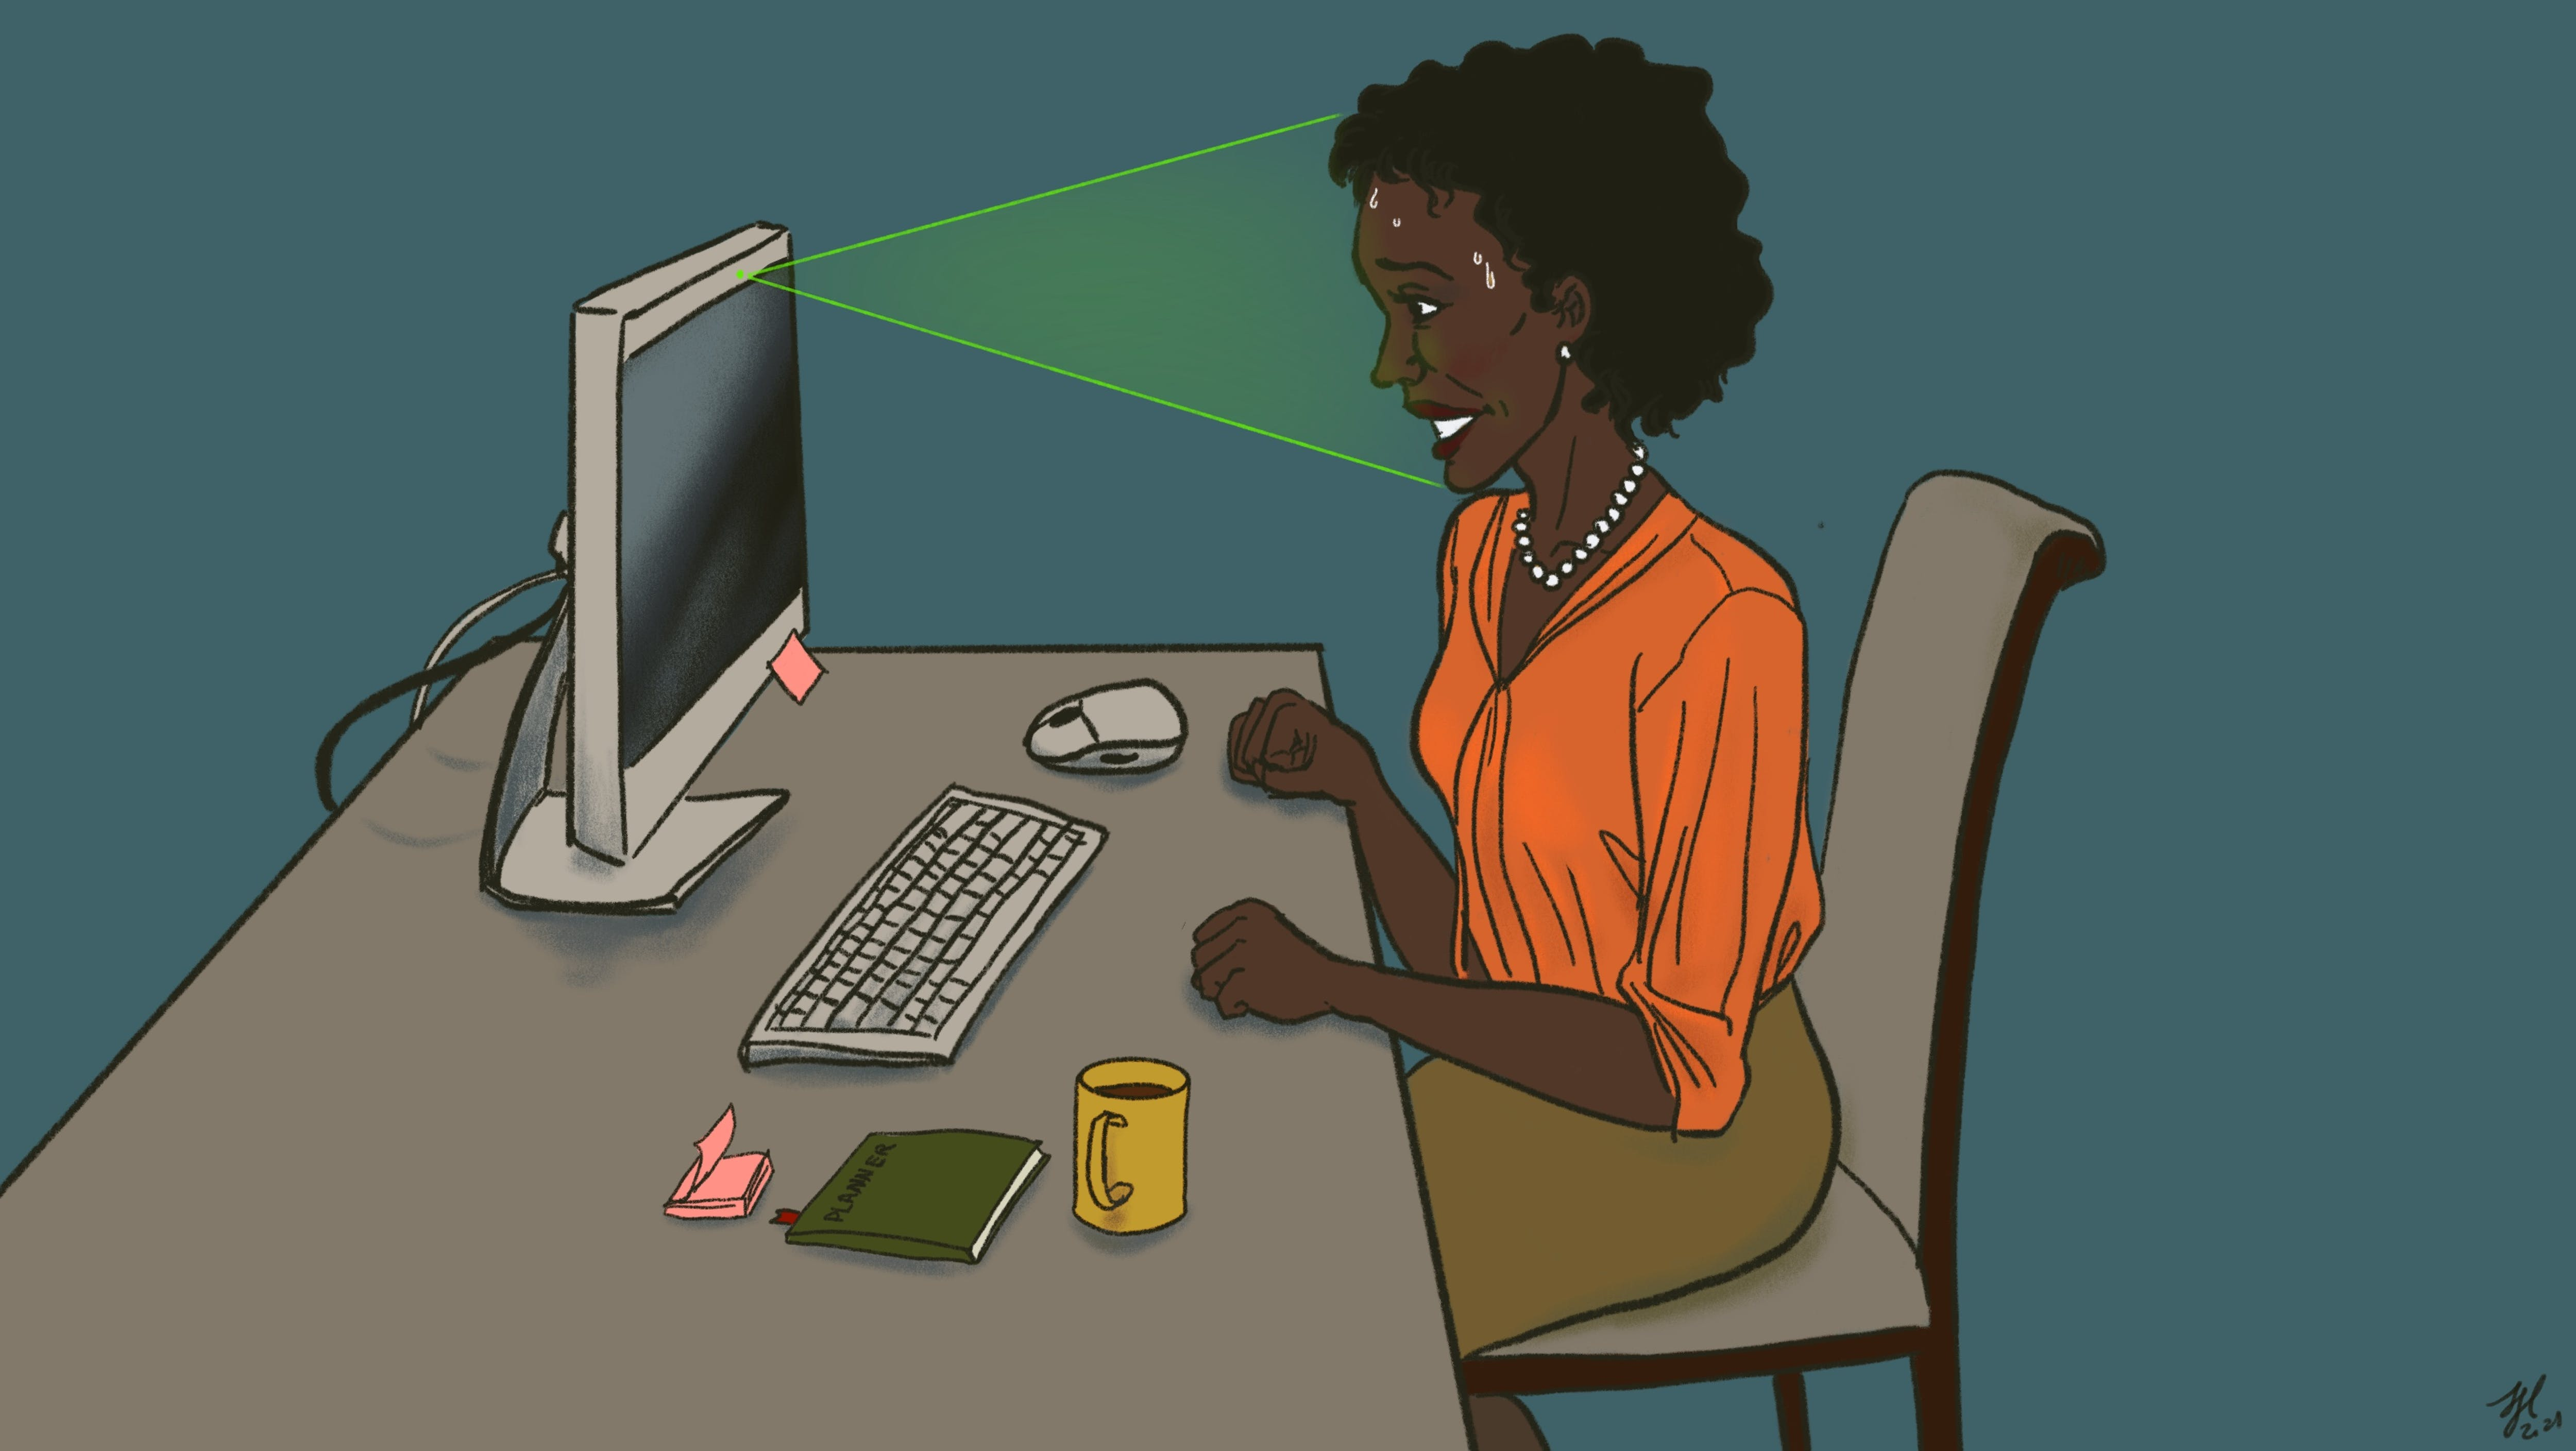 A black job seeker anxiously faces a computer screen, which is scanning her face.